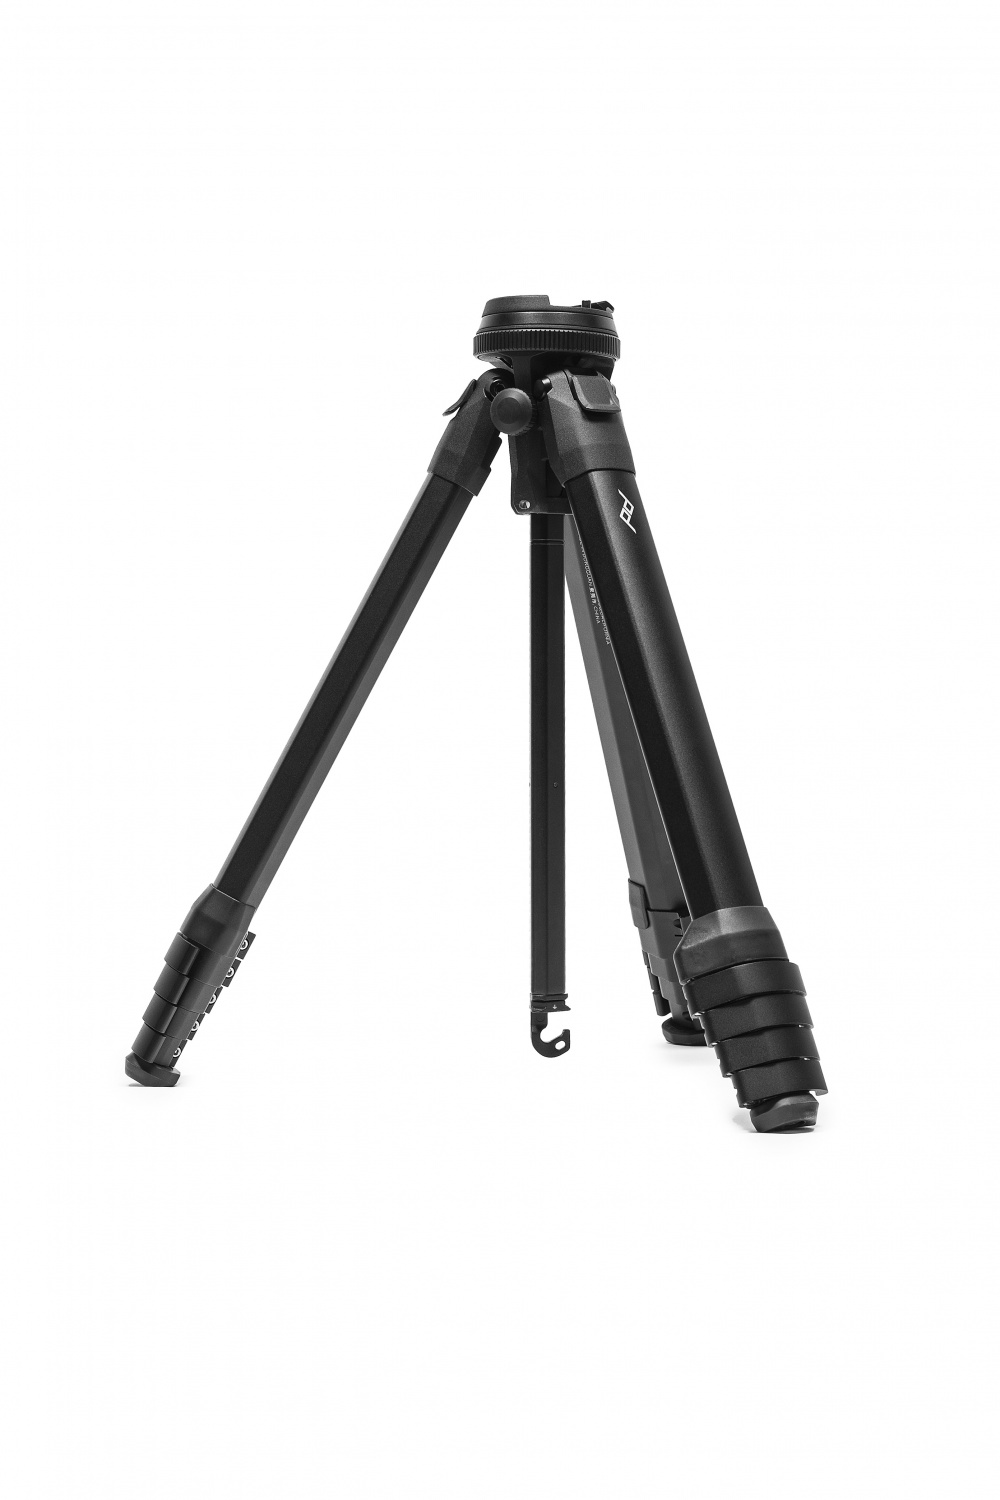 Peak Design Travel Tripod Aluminium